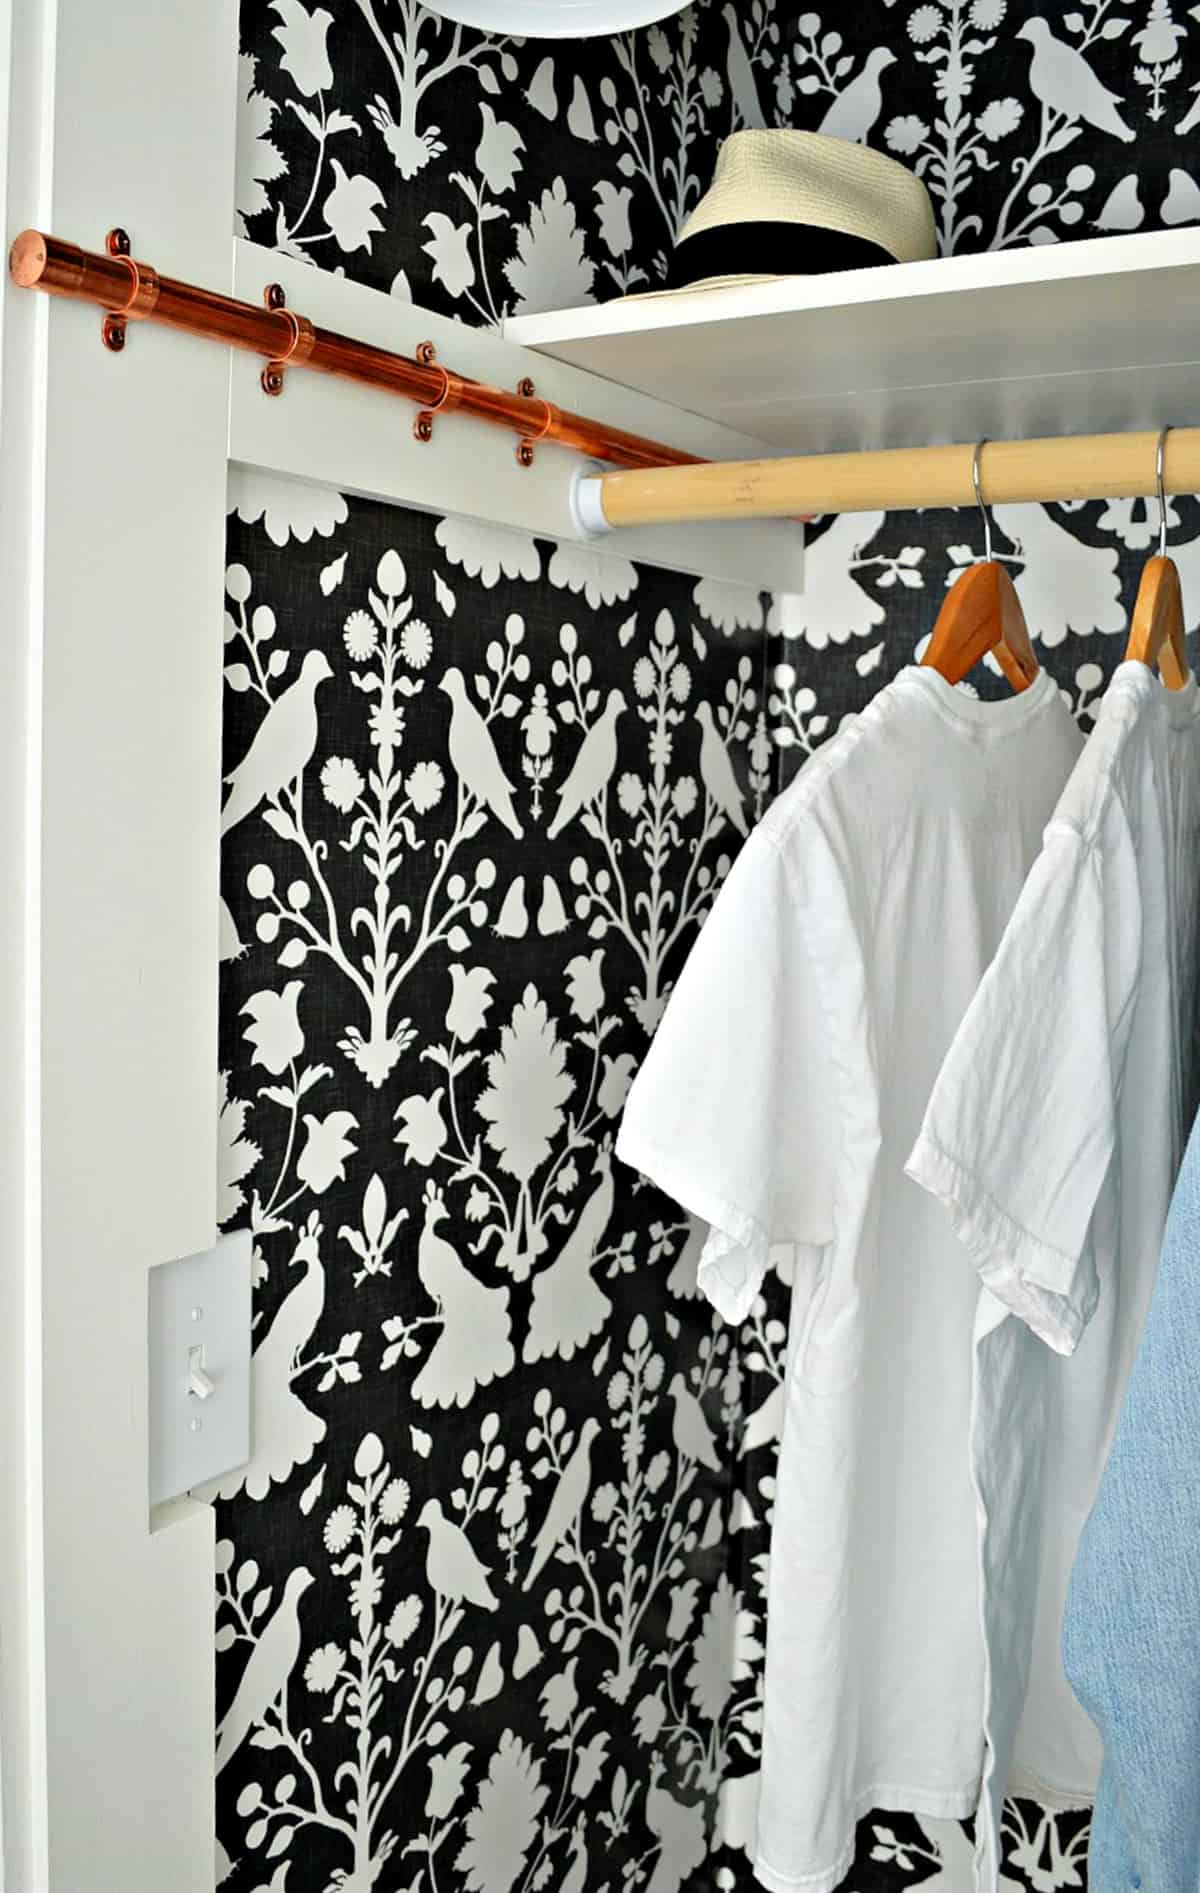 copper clothes rod in small closet with wallpaper